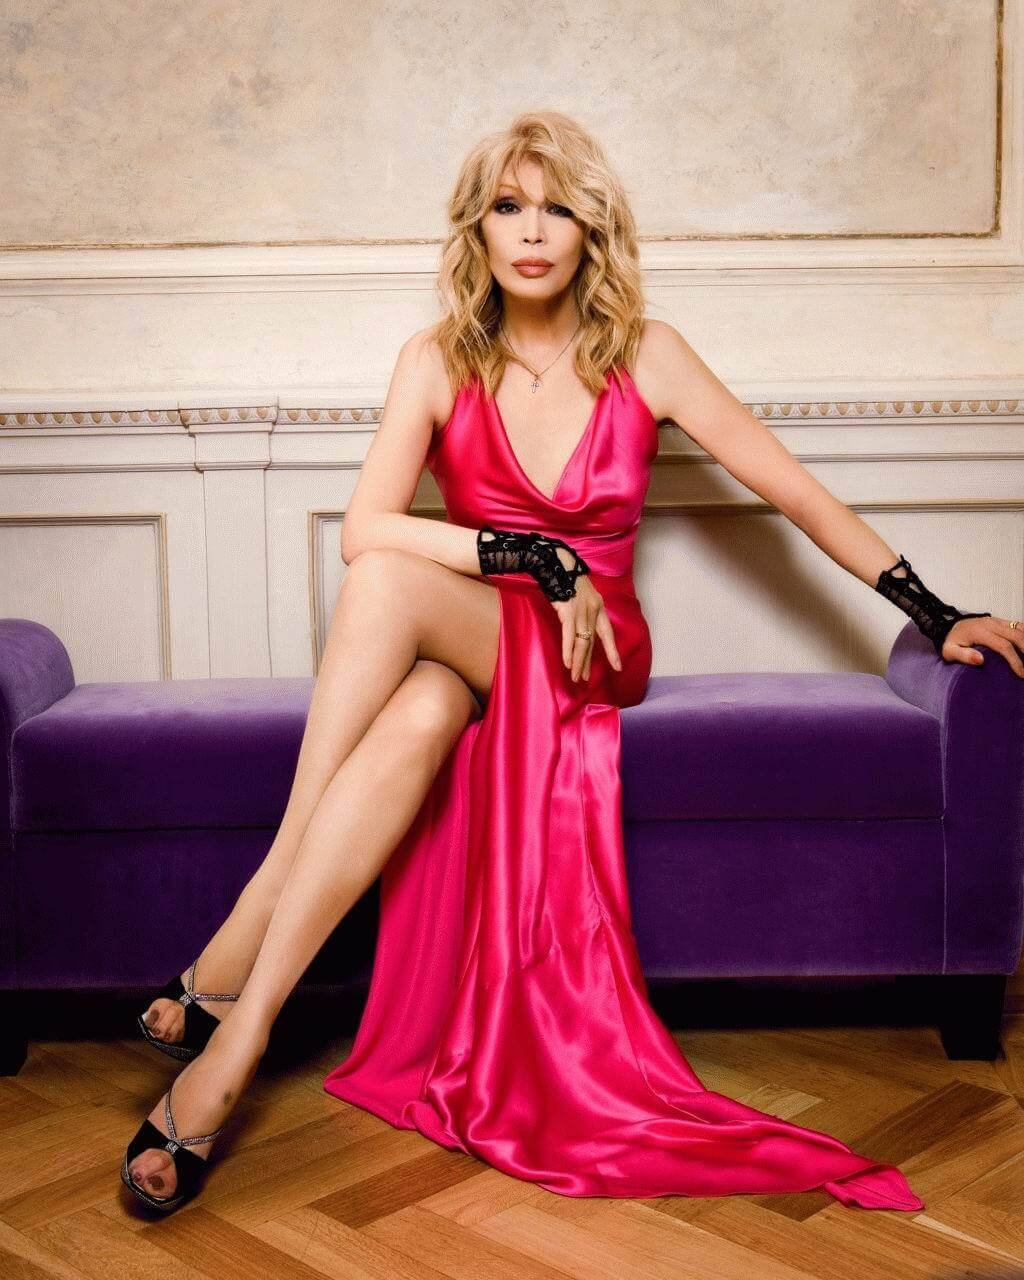 Amanda Lear Photos 49 hot pictures of amanda lear will motivate you to win her over